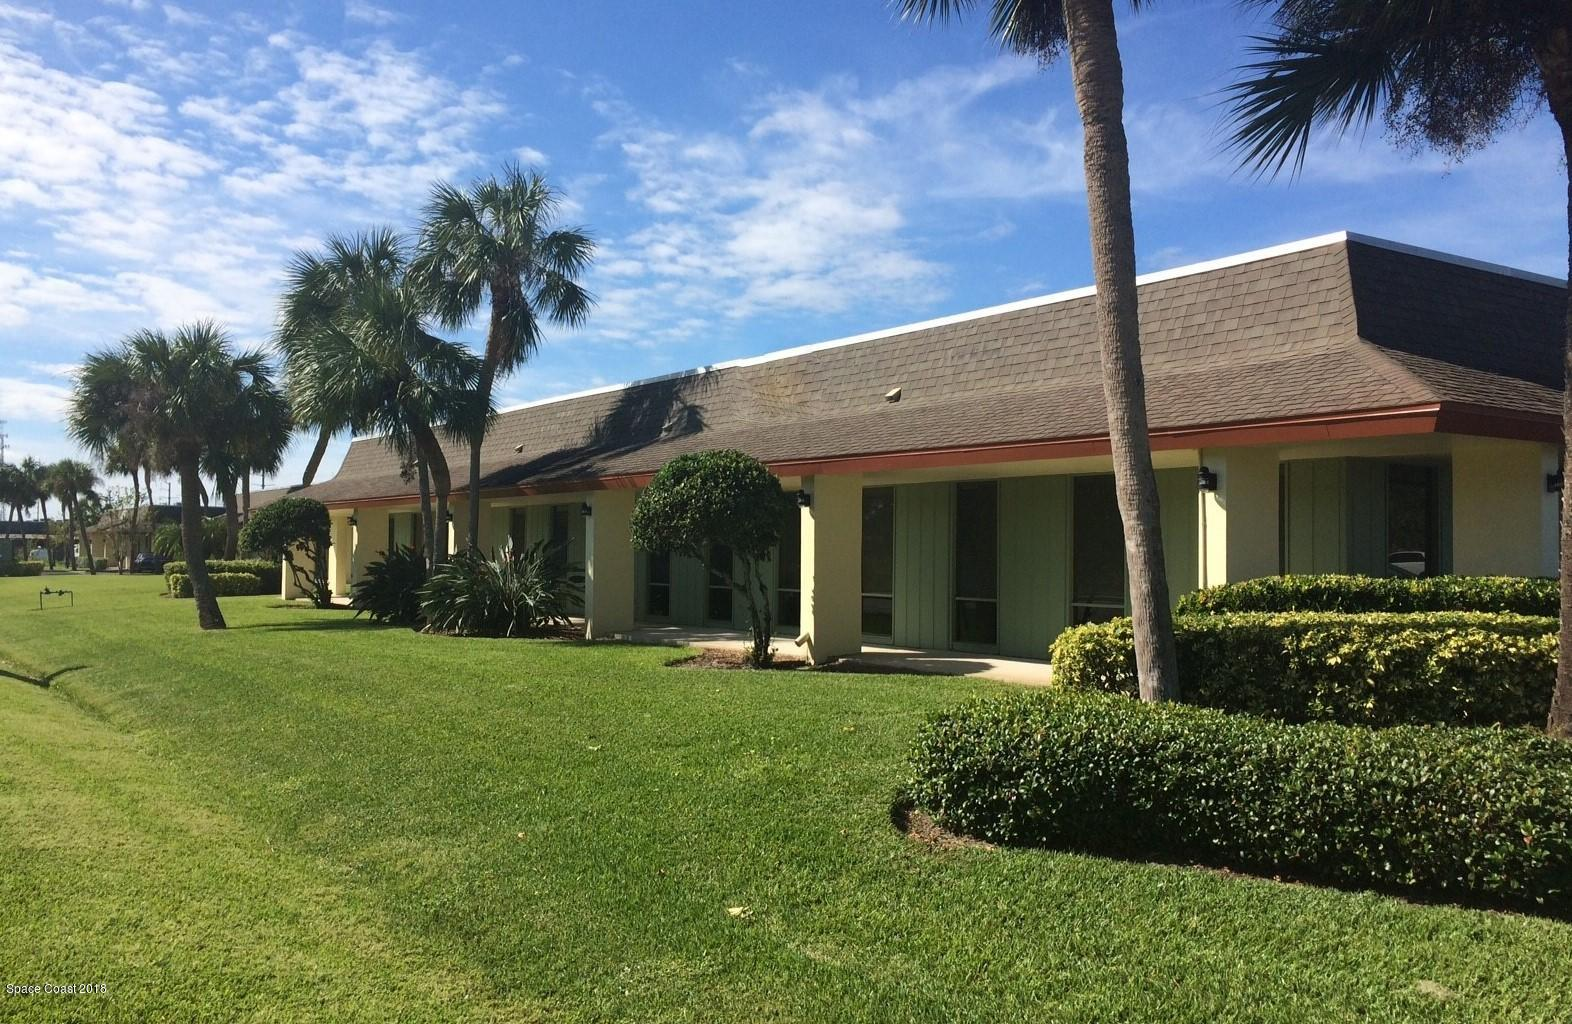 Commercial for Rent at 4610 Lipscomb 4610 Lipscomb Palm Bay, Florida 32905 United States